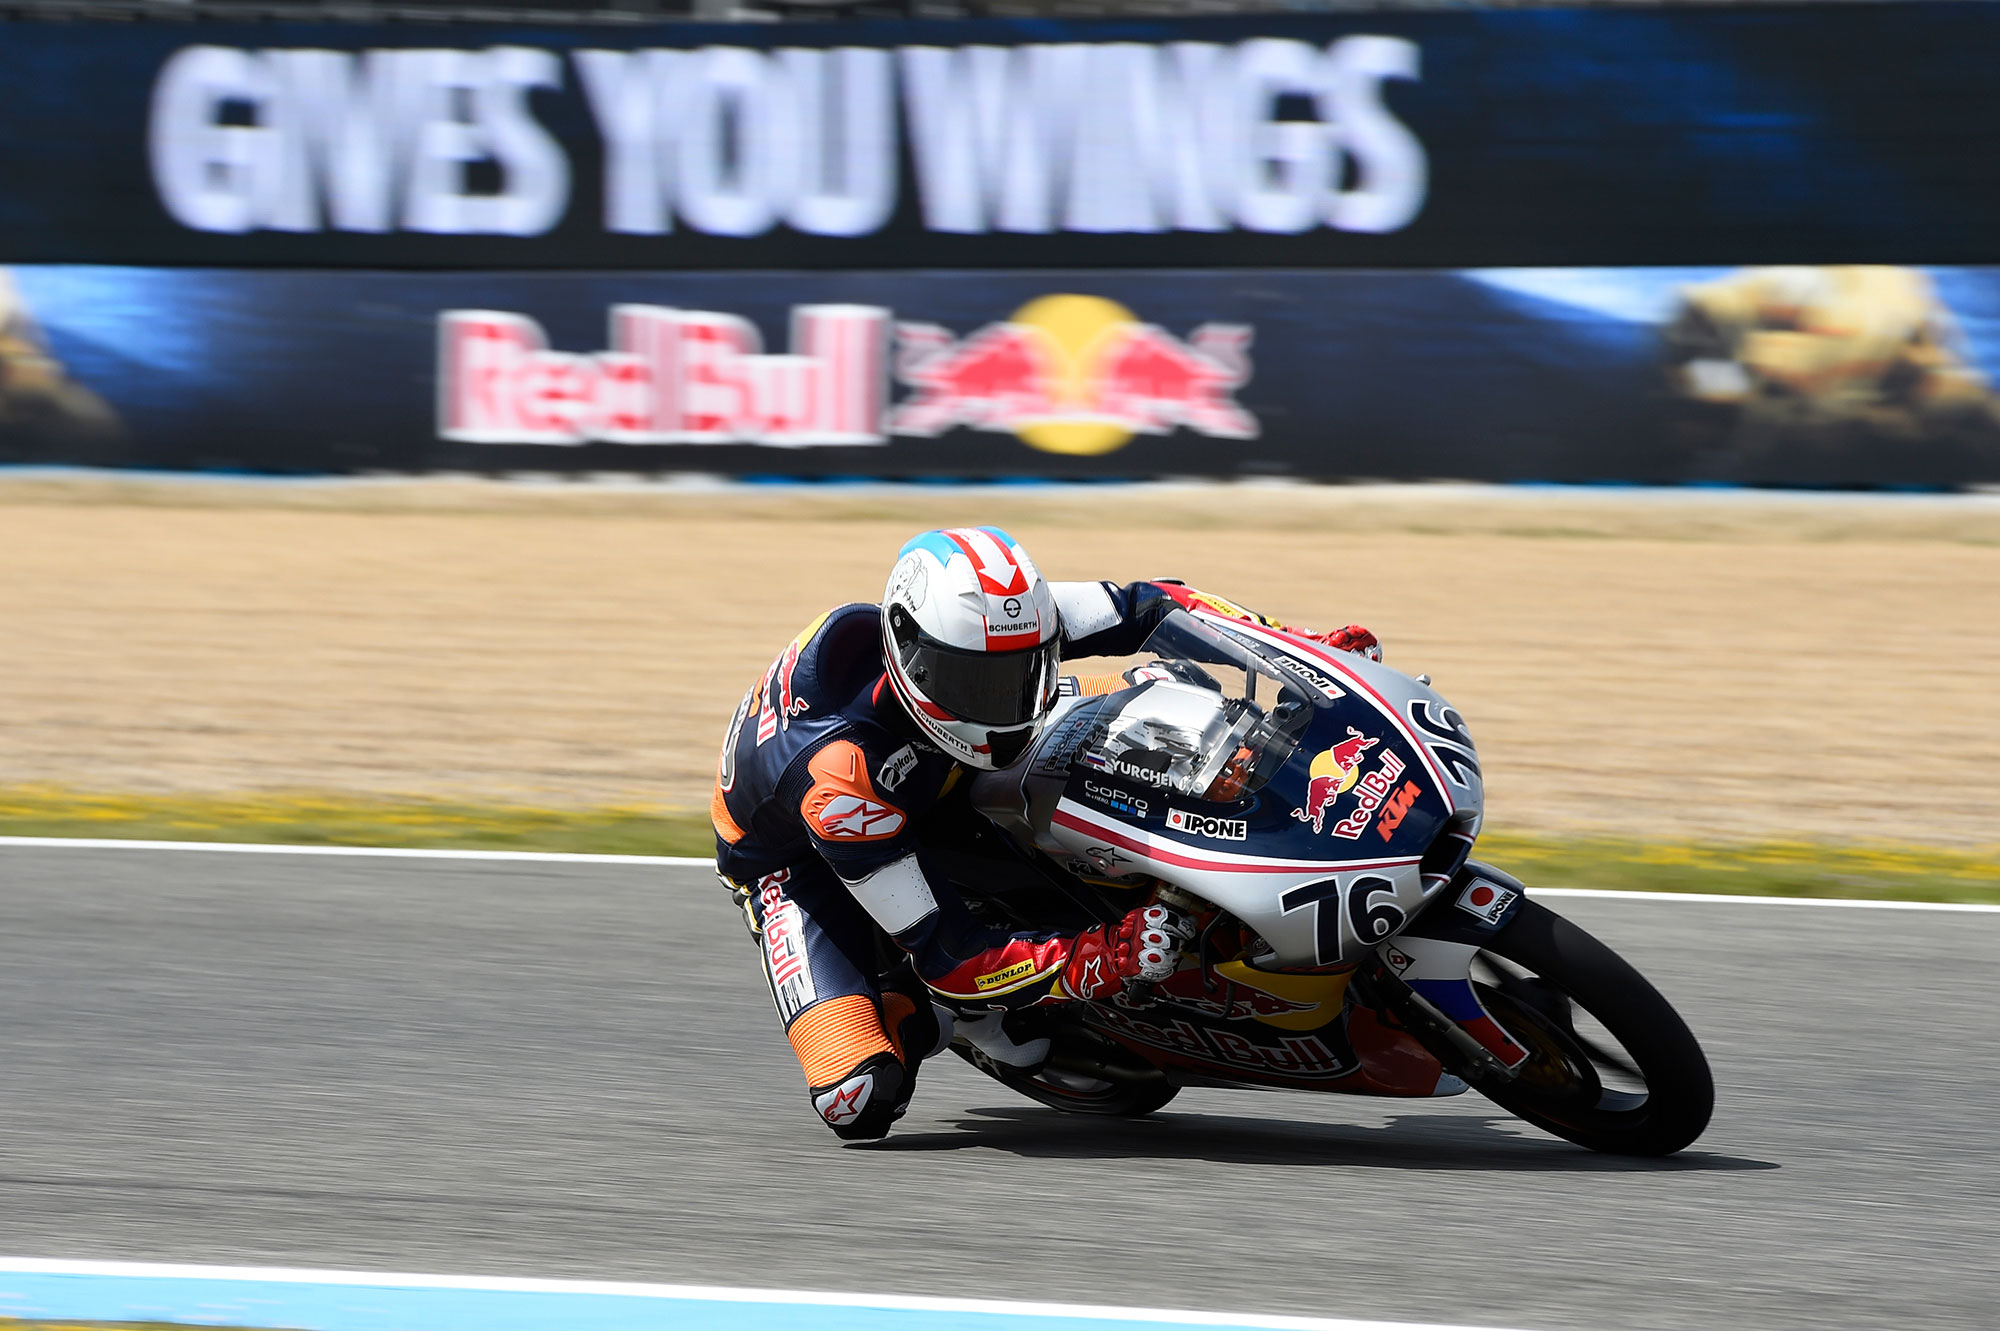 Makar yurchenko for Red Bull MotoGP Rookies Cup